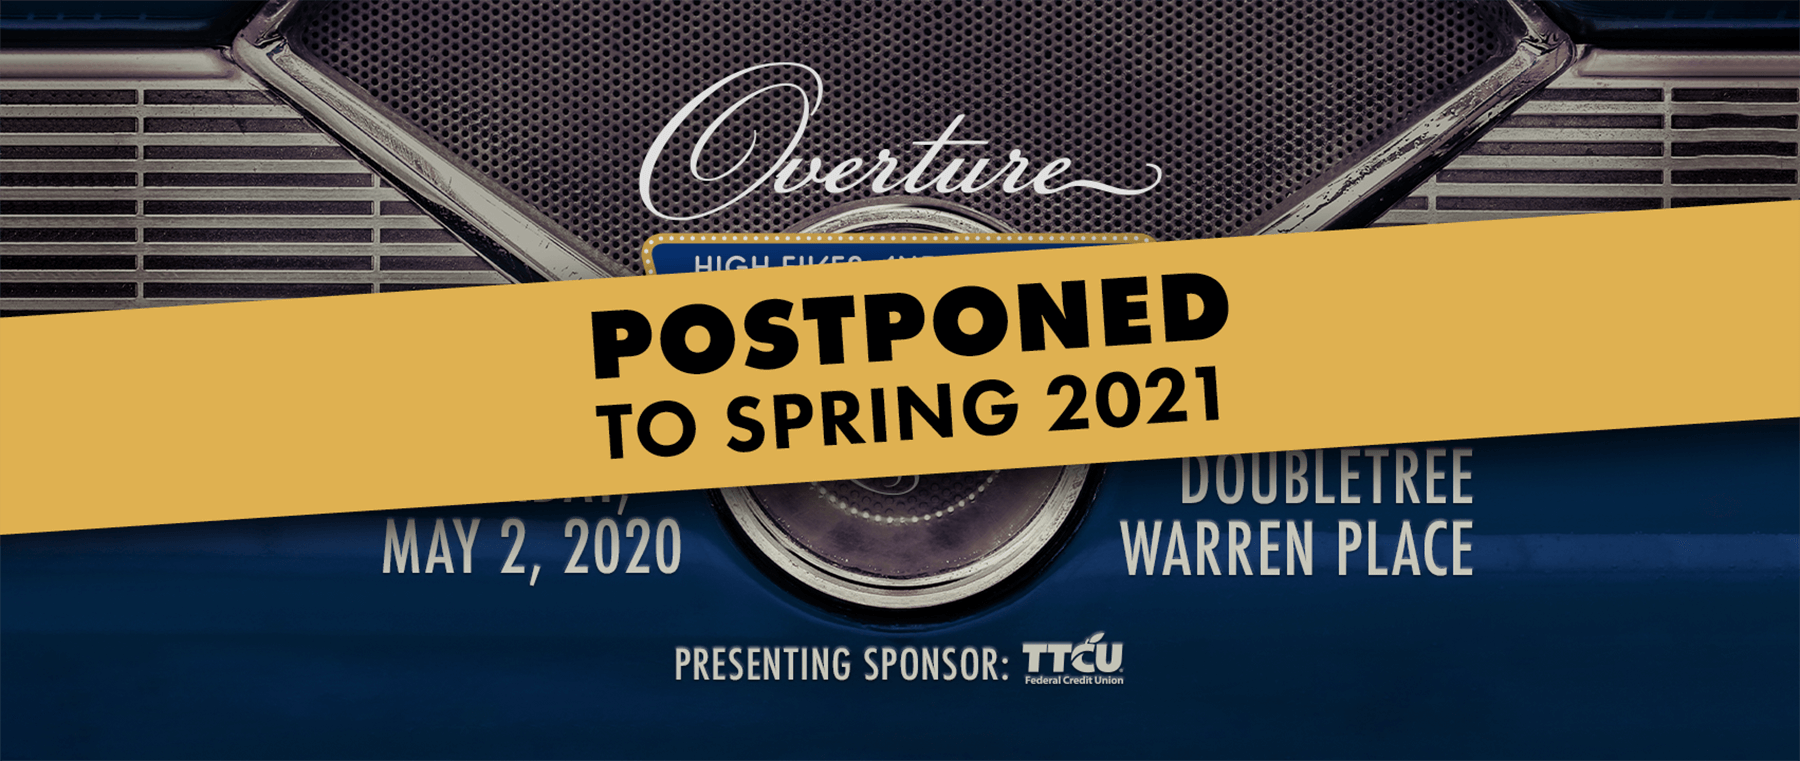 Overture Event: Postponed to spring 2021